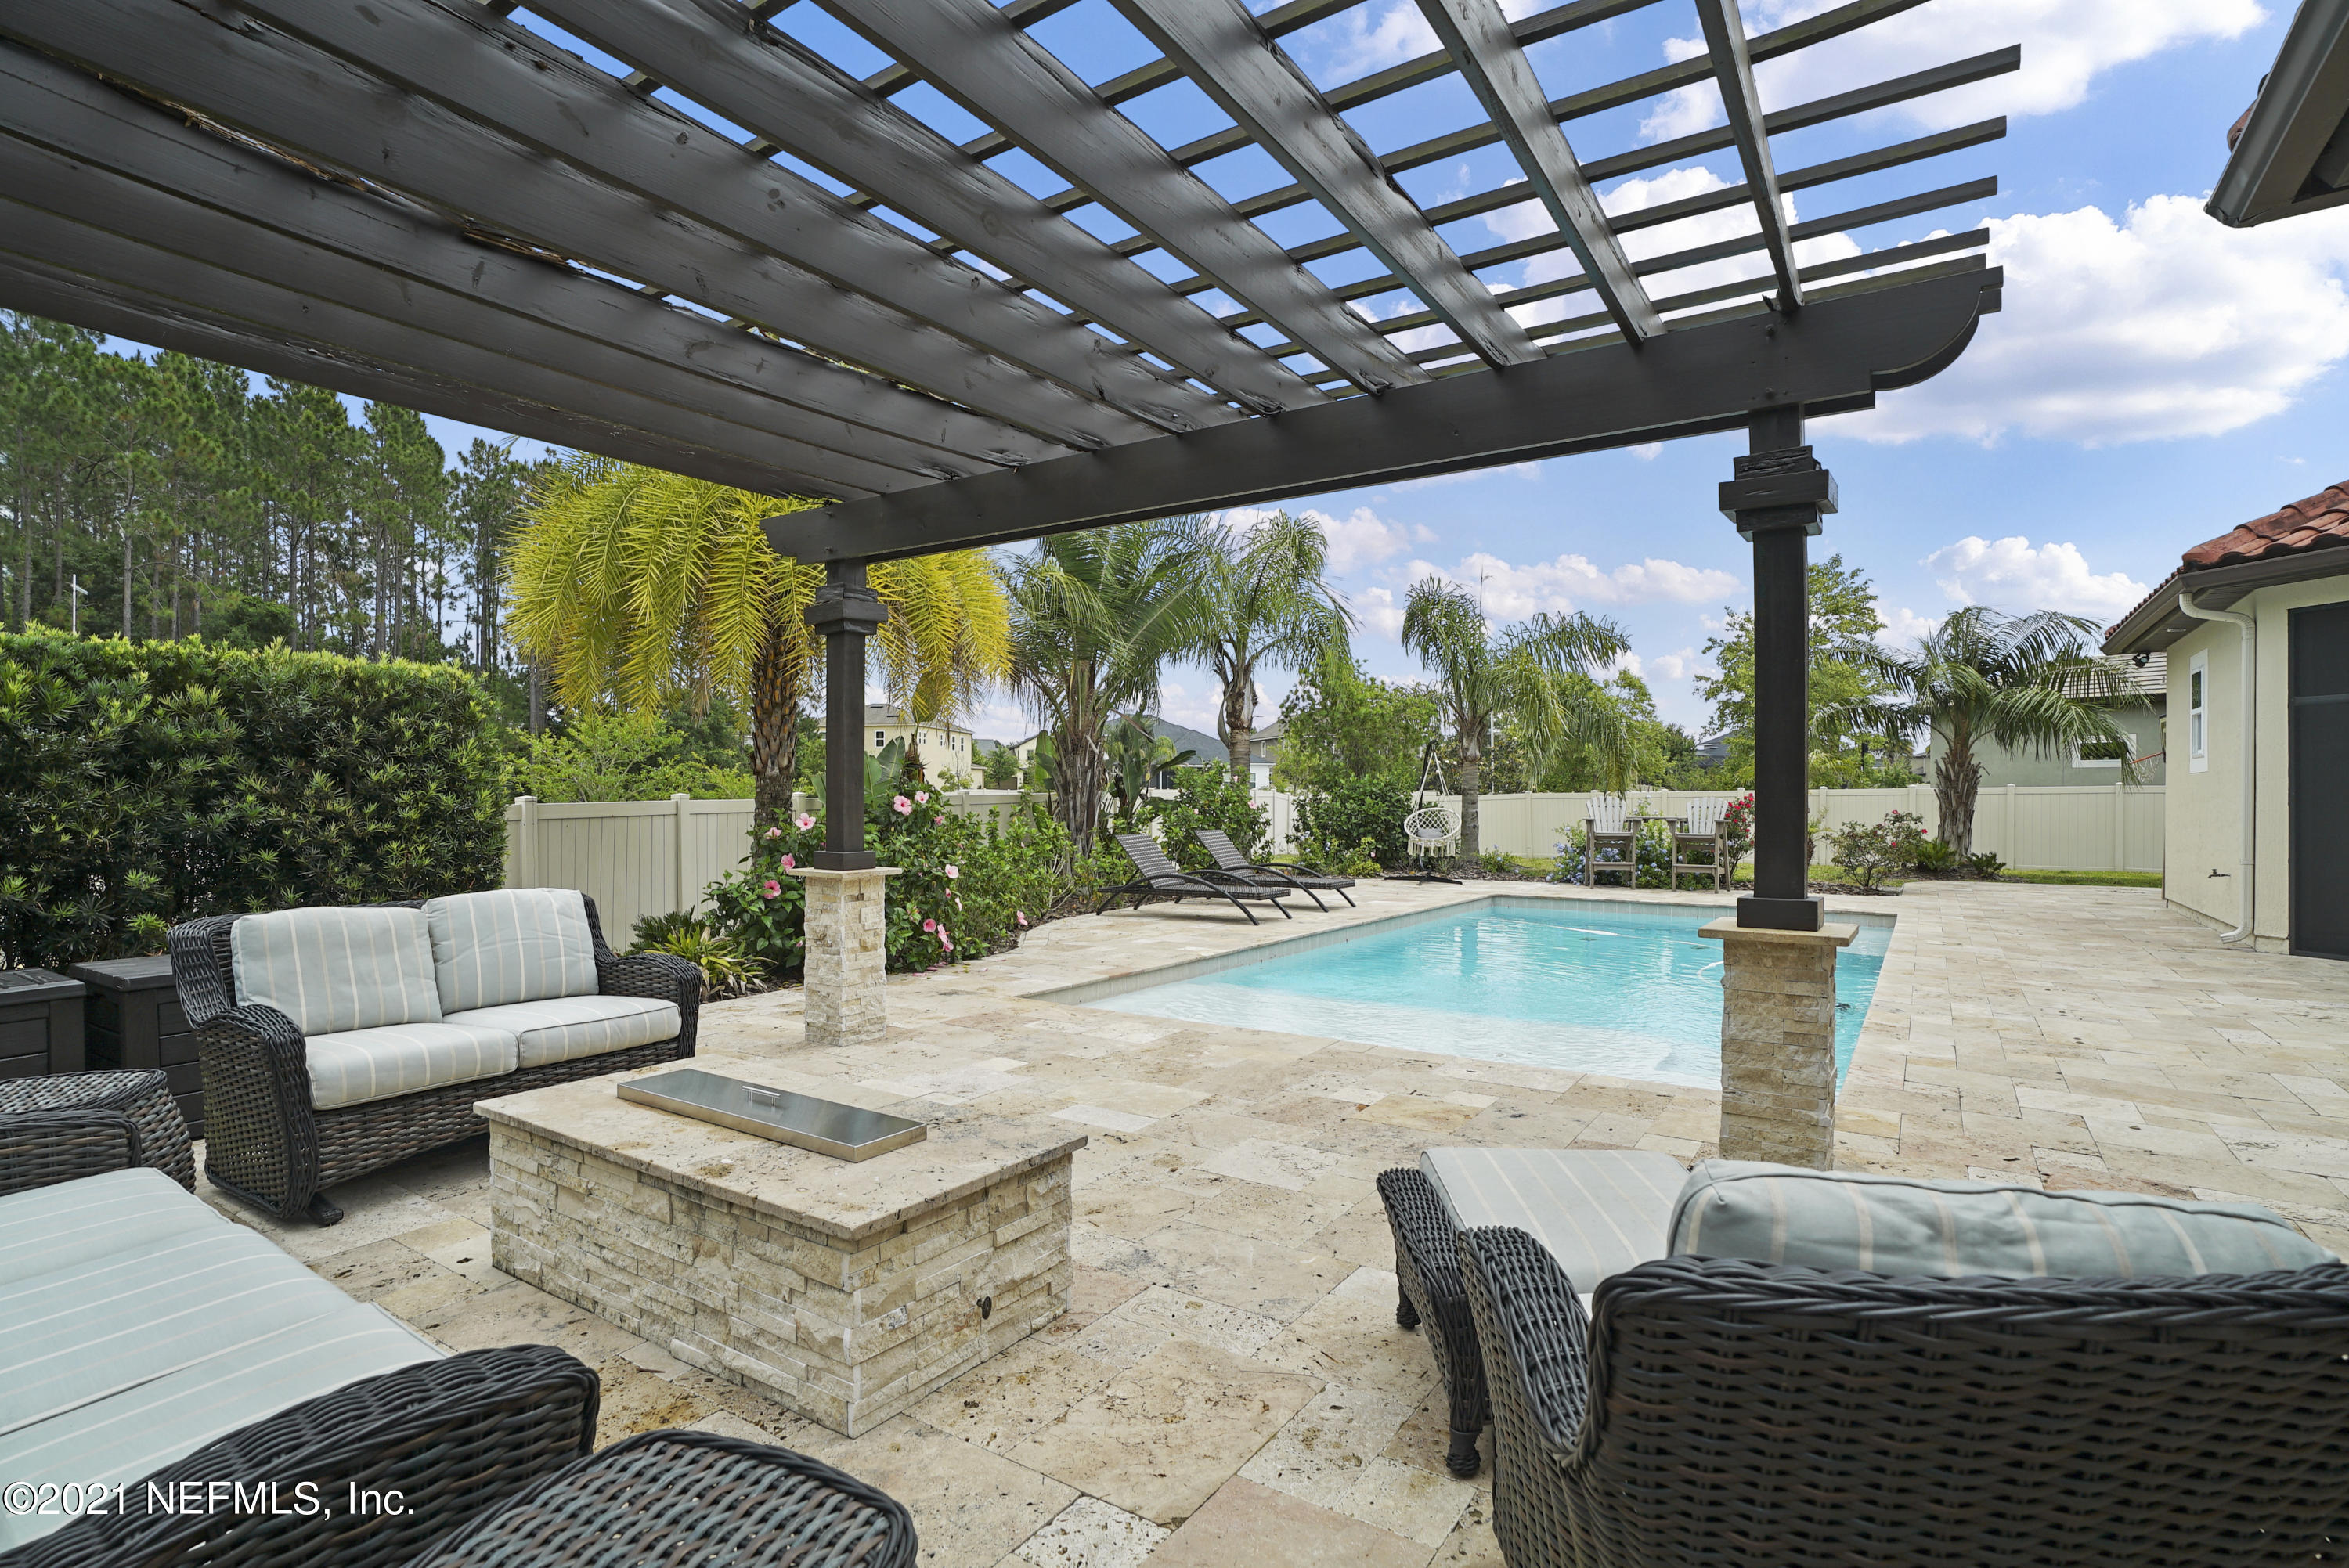 One of a kind, custom ICI built, POOL HOME in Nocatee's only GATED 44 home community that is in close proximity to Valley Ridge Academy K-8 school. Courtyard entry with a unique, customized, split floor plan. This stunning home offers dramatic high ceilings which provide a grand entry foyer connecting the great room to the large kitchen and dining space. Enjoy entertaining inside and out --  custom wet bar and built in cabinetry in great room plus focal point fireplace. When you want to take the party outside, head to the Outdoor OASIS. Enjoy the covered lanai and take a seat at your bi-level bar, grill out in your summer kitchen, and enjoy the fireplace and outdoor TV! Pool with sundeck, travertine deck, pergola and gas fire pit. Lanai can be enclosed with motorized, retractable screen. Master enclave with seating area plus large master bath, dual closets with custom organizer system and private access to the pool. Large windows beaming with tons of natural light throughout the home. 4 additional guest rooms, 2 guest baths (one ensuite) and additional dedicated office space with cabana bath access. Powder room for guest convenience. Lots of extra in this amazing home, including Spanish-style tile roof, details like crown moulding, rounded corners, surround sound system, plantation shutters throughout, built in bench seating, 10ft doors, laundry room with utility sink and cabinetry. Please see documents for additional info.